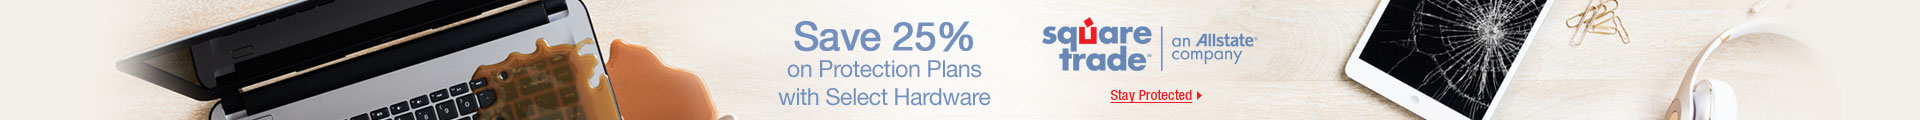 Save 25% on Protection Plans with Select Hardware